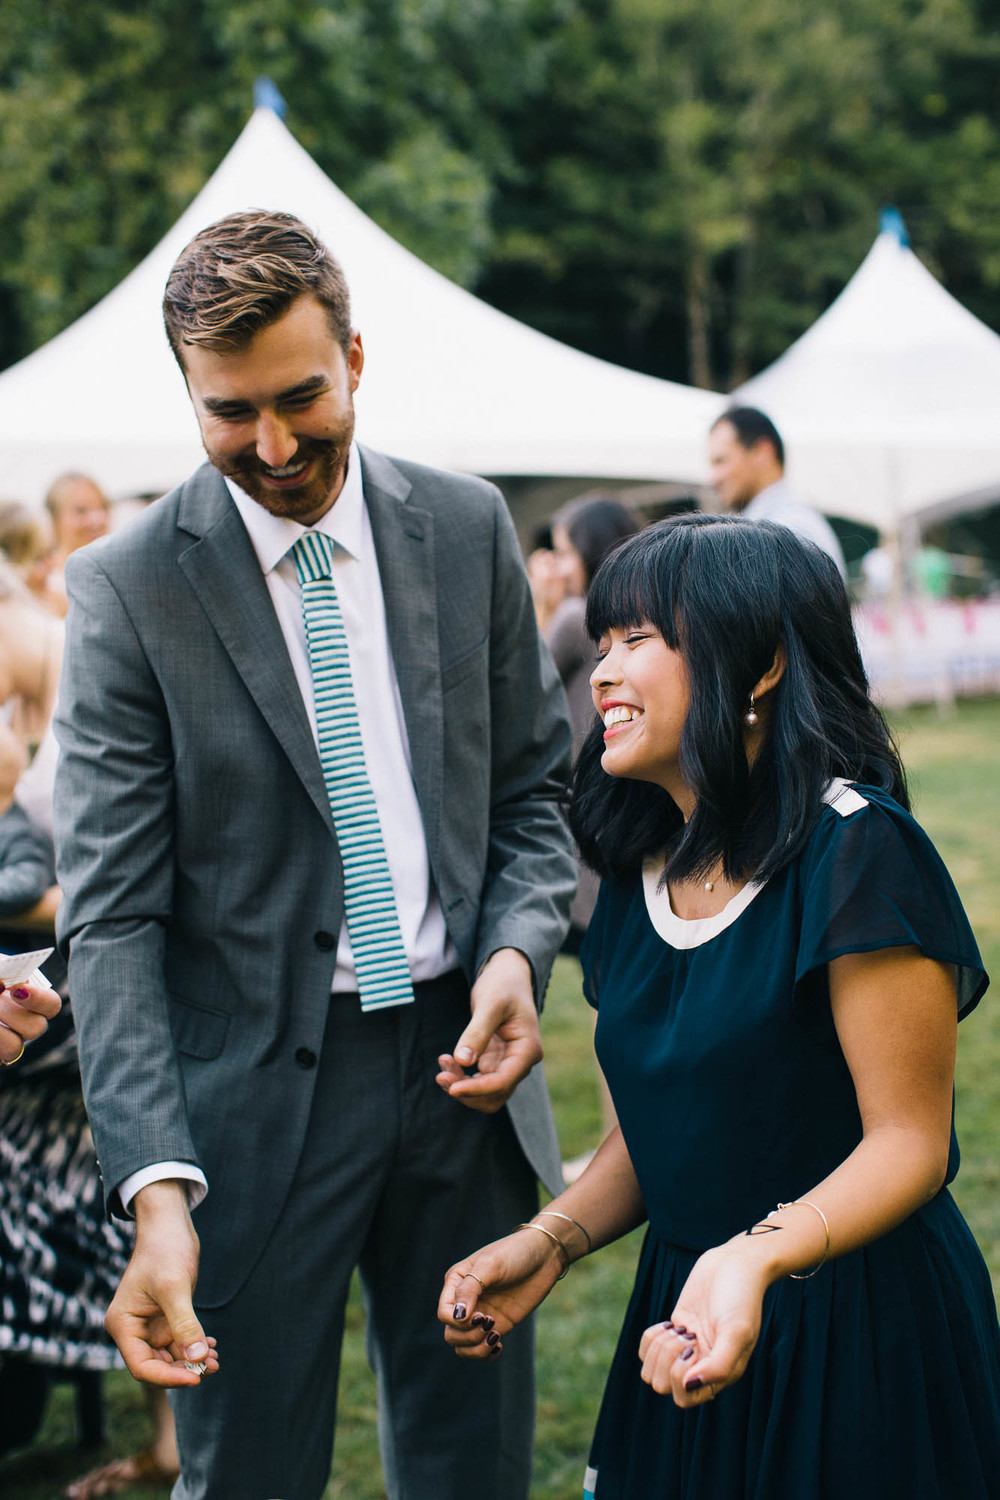 20140920_wedding_best_vancouver_rustic_photographer_photography_squamish__288.jpg